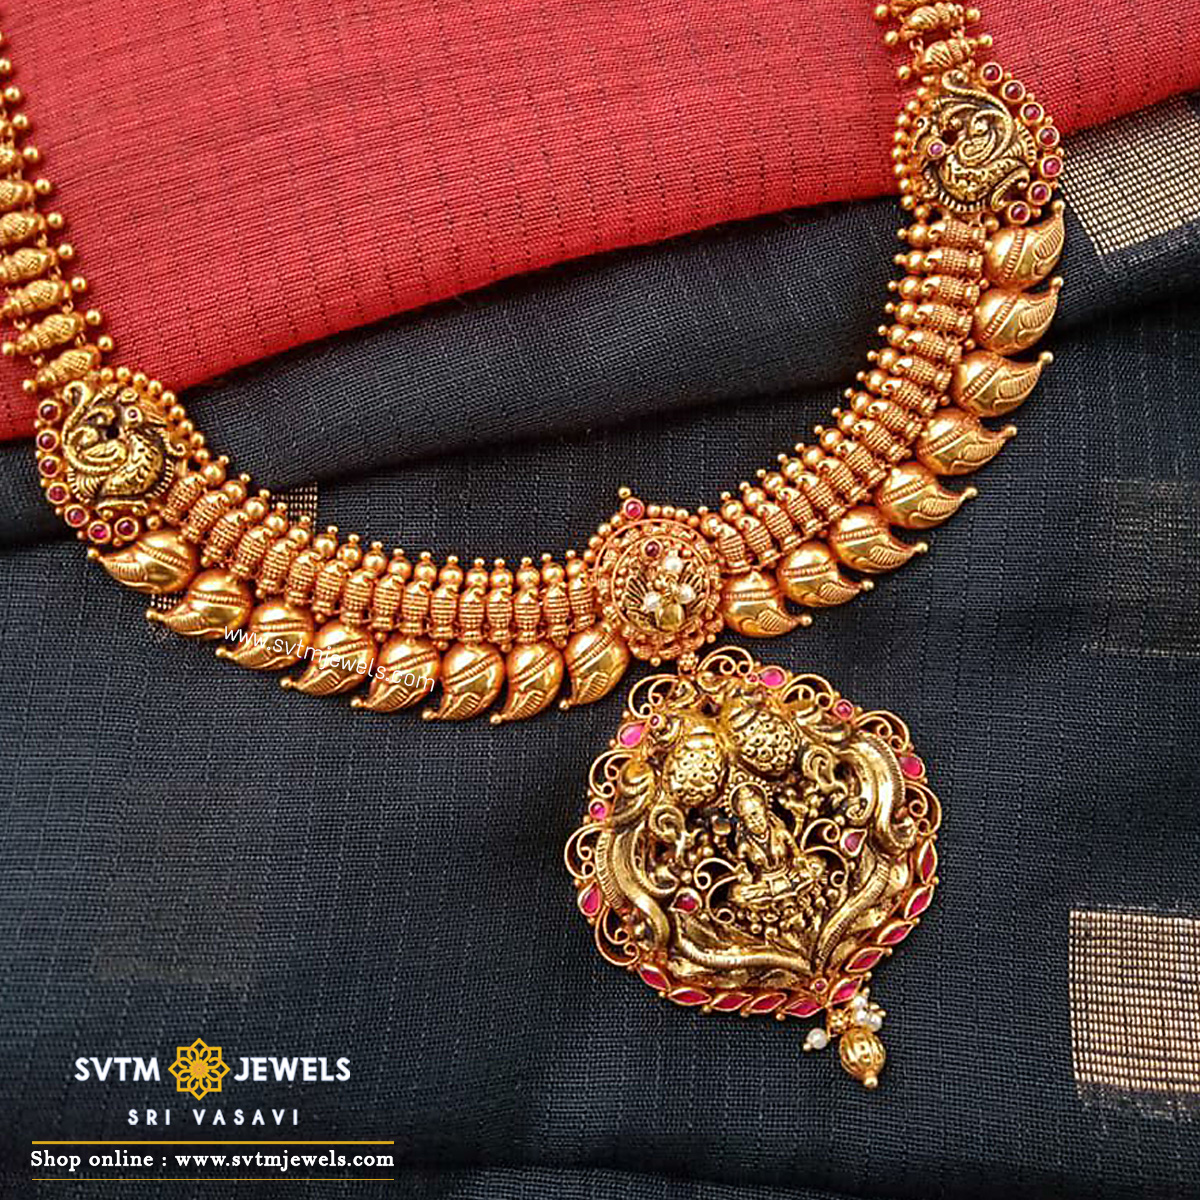 Tantalizing Karunya necklace